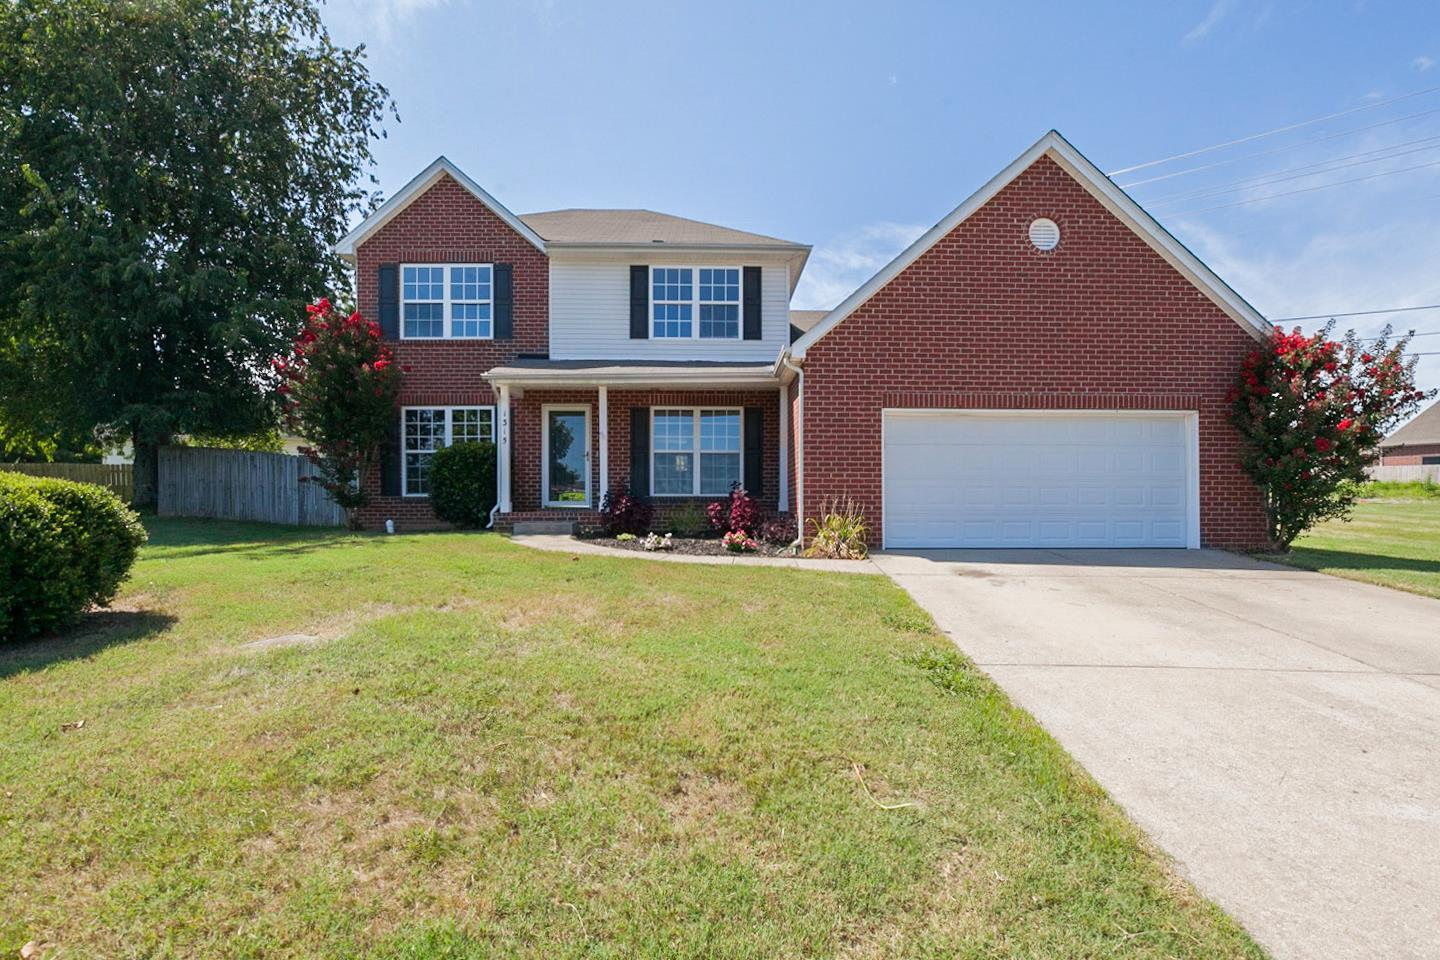 1315 Chapman Ct, Spring Hill, TN 37174 - Spring Hill, TN real estate listing